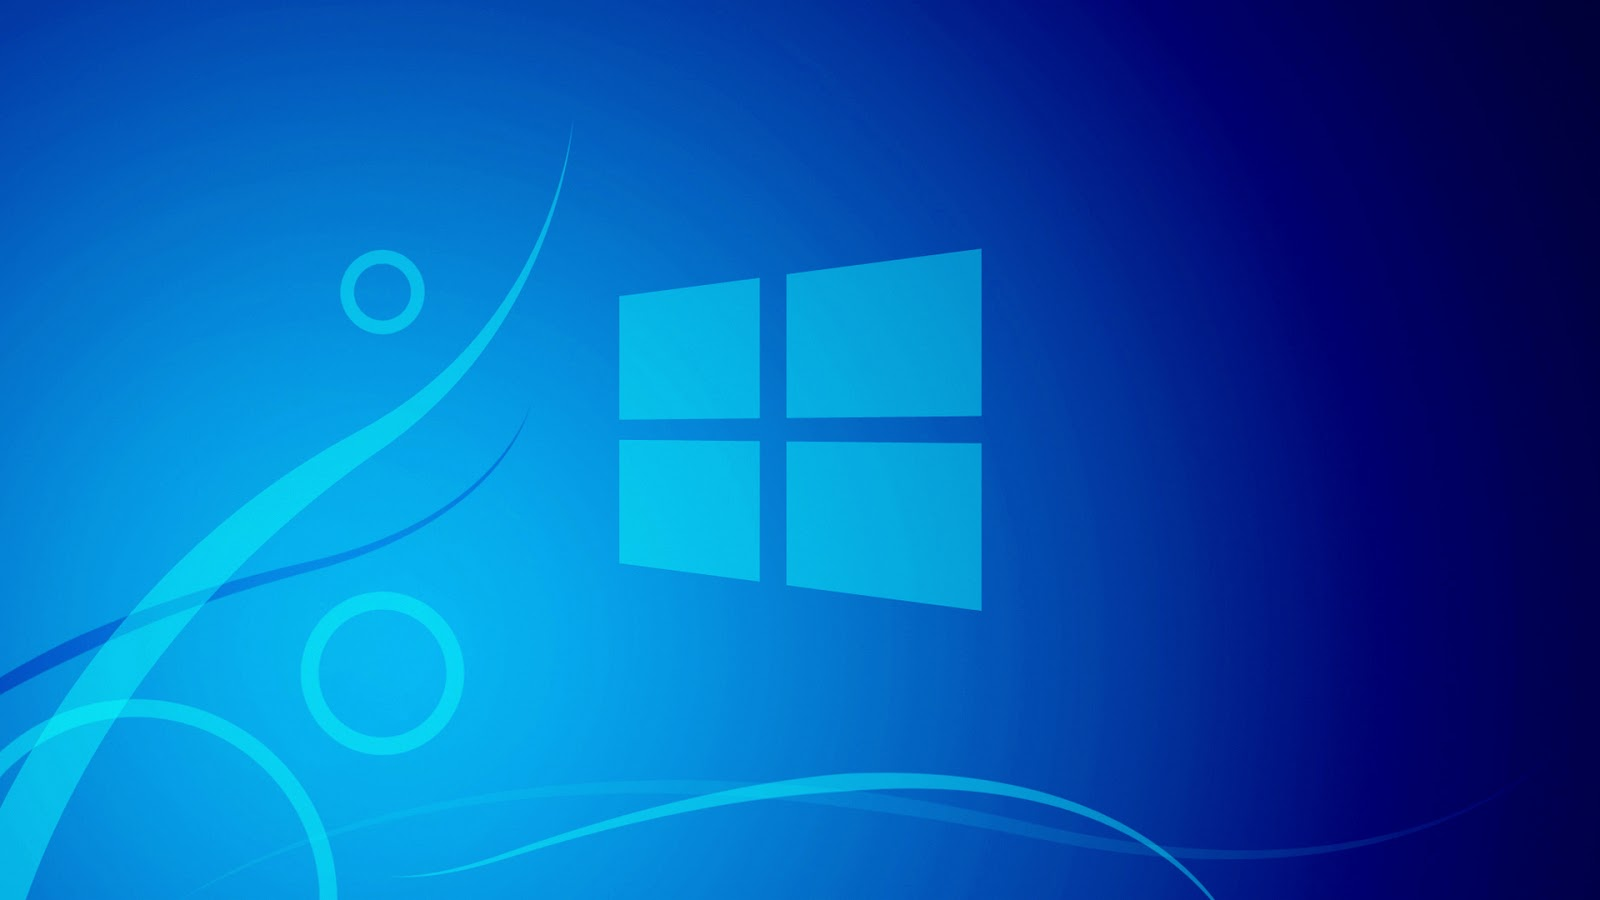 Windows 8 HD Wallpaper 1080p | Galerry Wallpaper